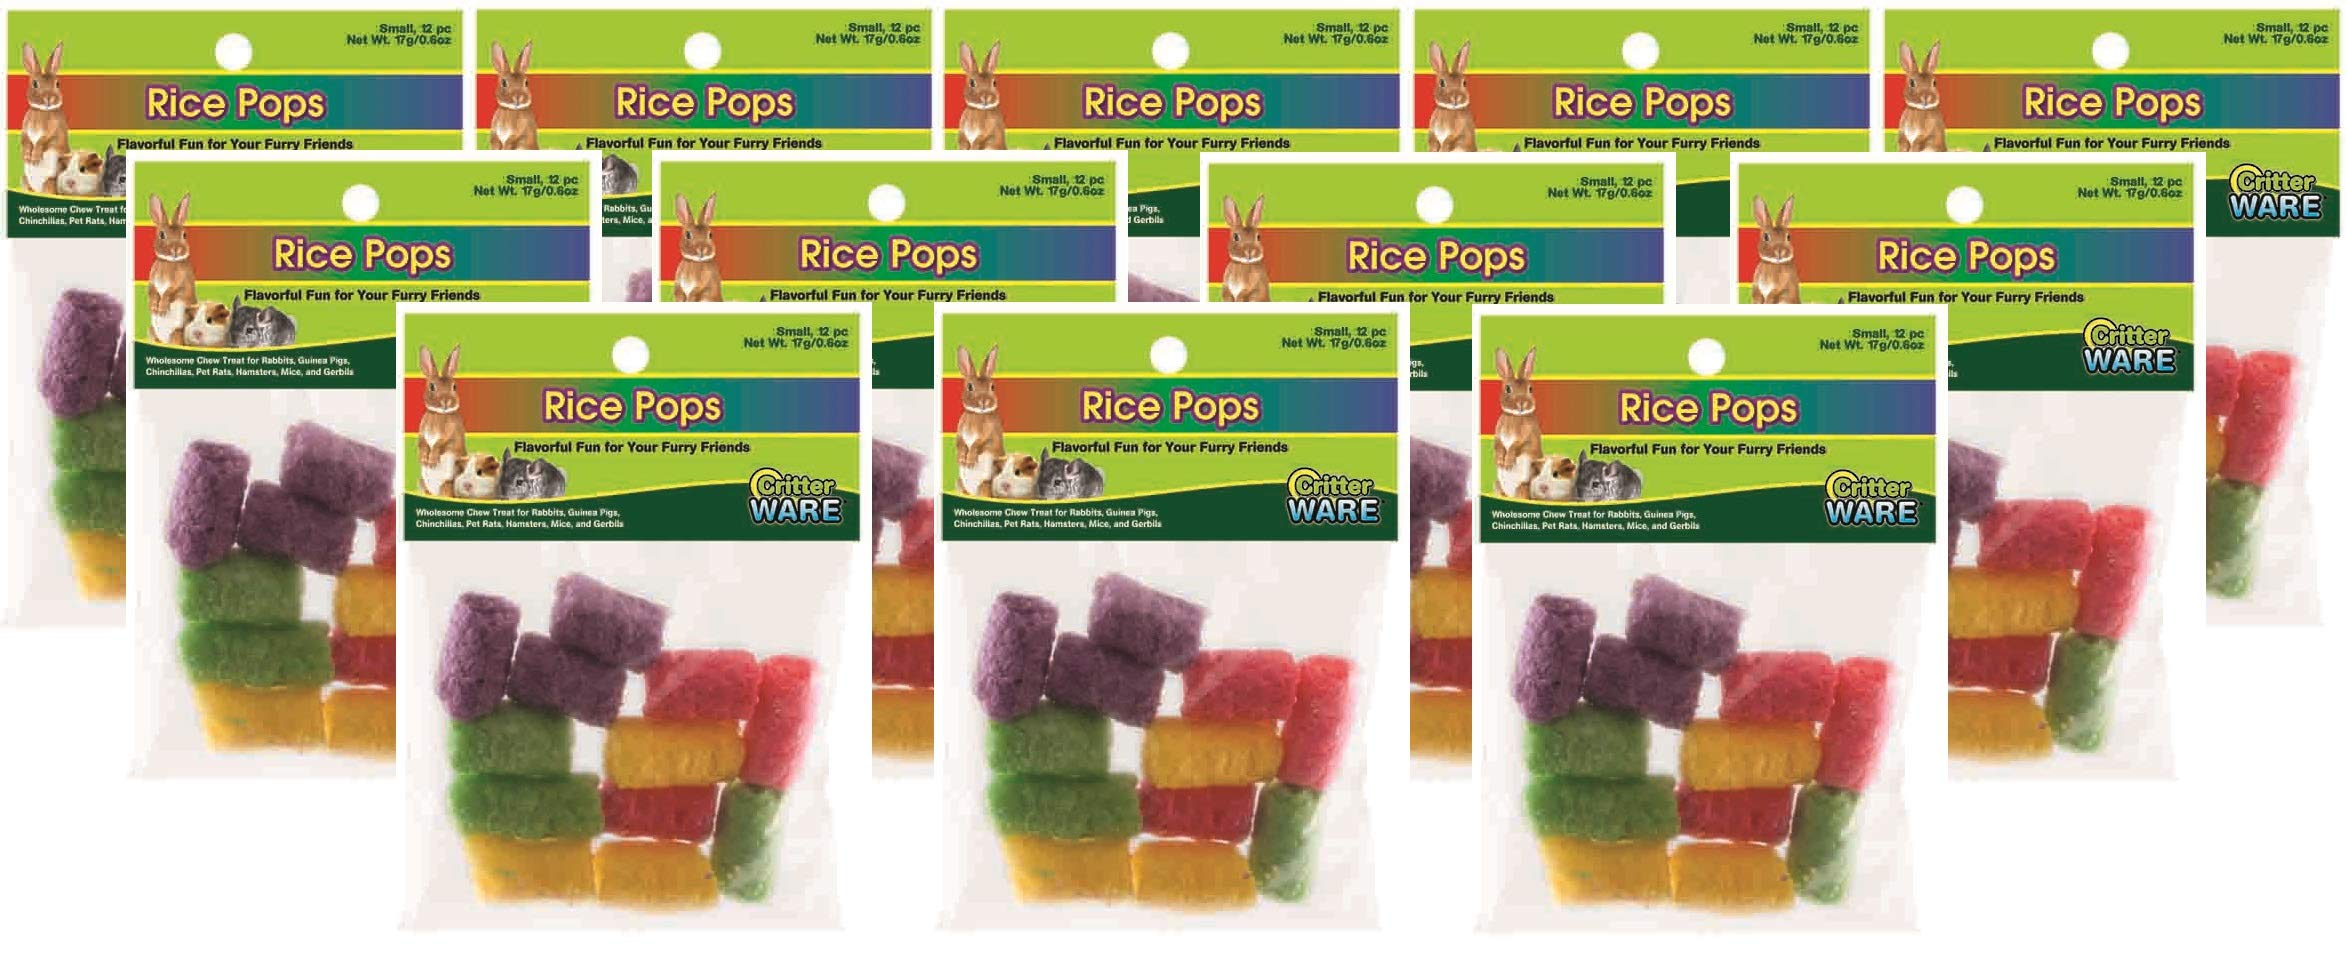 Ware Manufacturing 12 Pack of Small Rice Pops Chew Treats for Small Pets, 12 Pops Per Pack